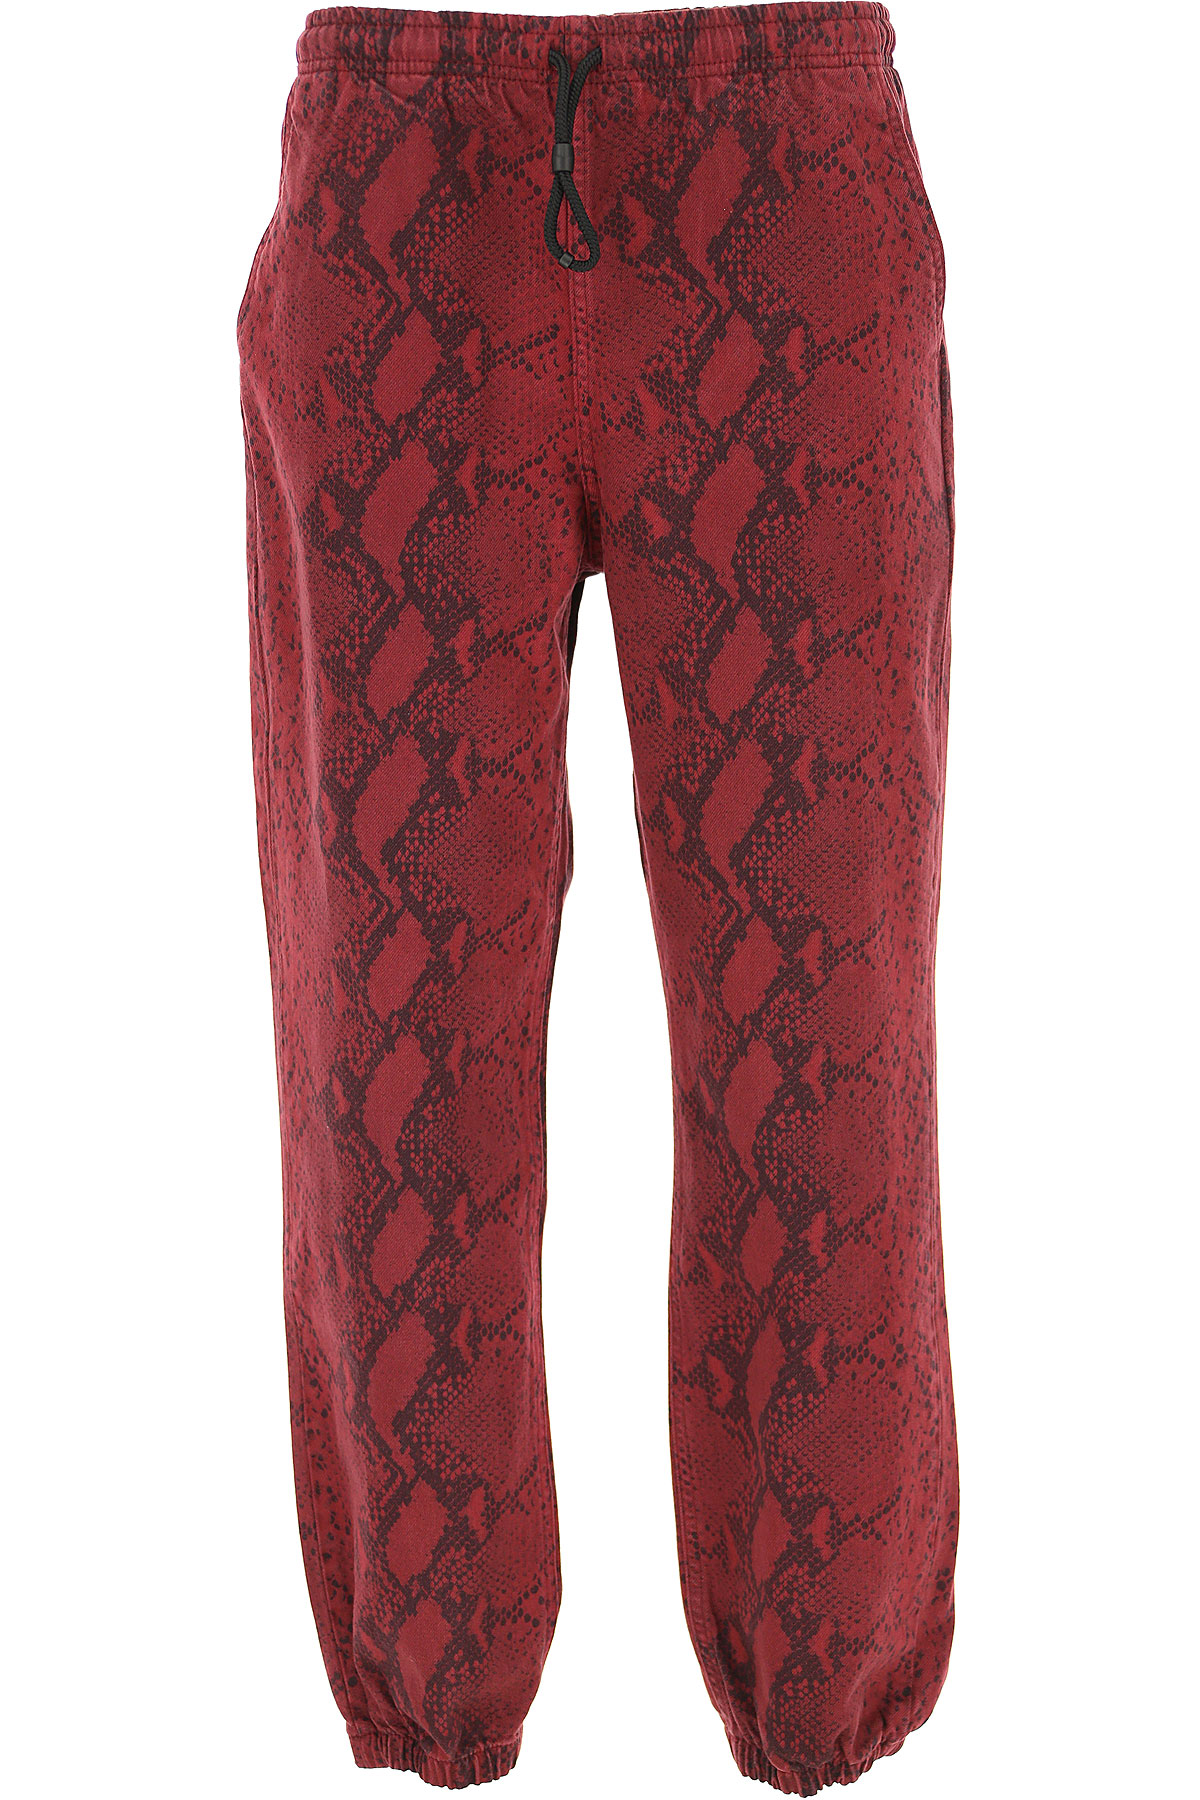 Alexander Wang Pants for Women On Sale, Red, Cotton, 2019, 4 6